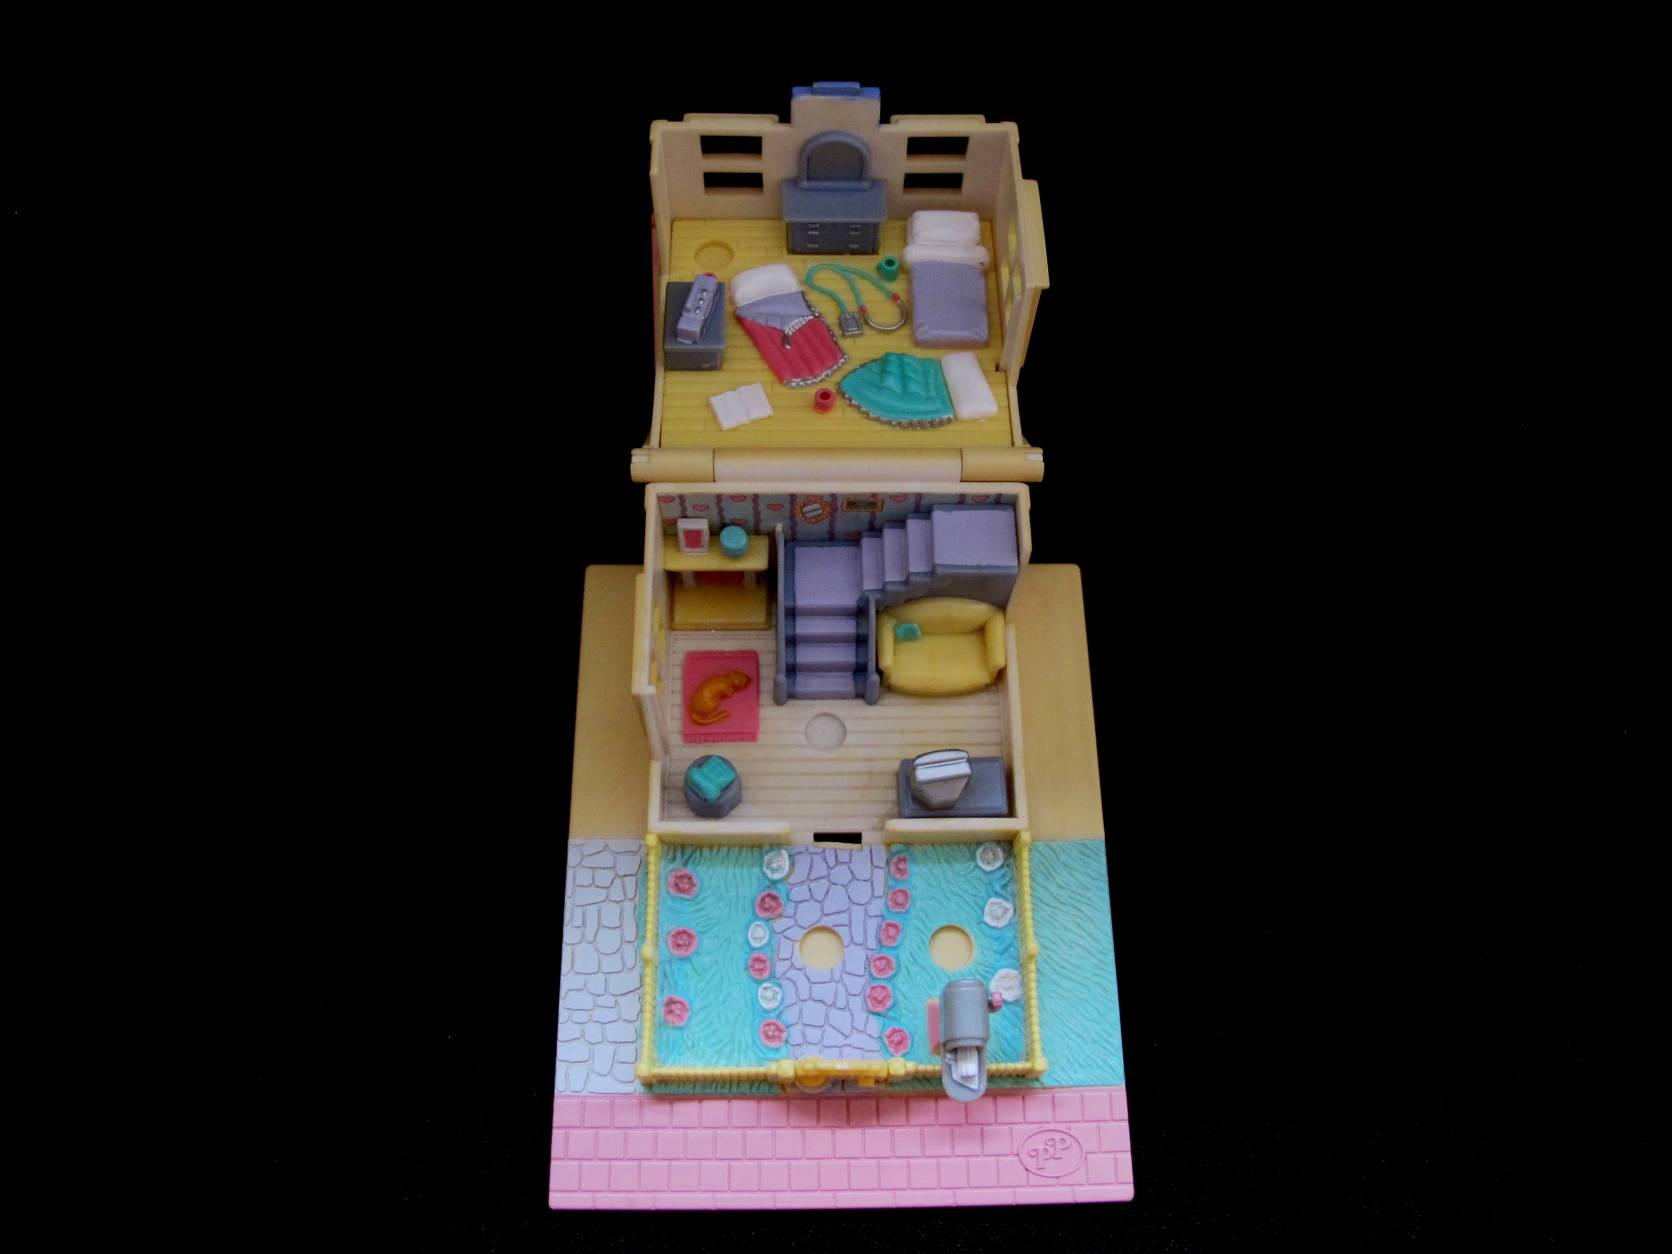 1993 Cozy Cottage geel Polly Pocket (2)